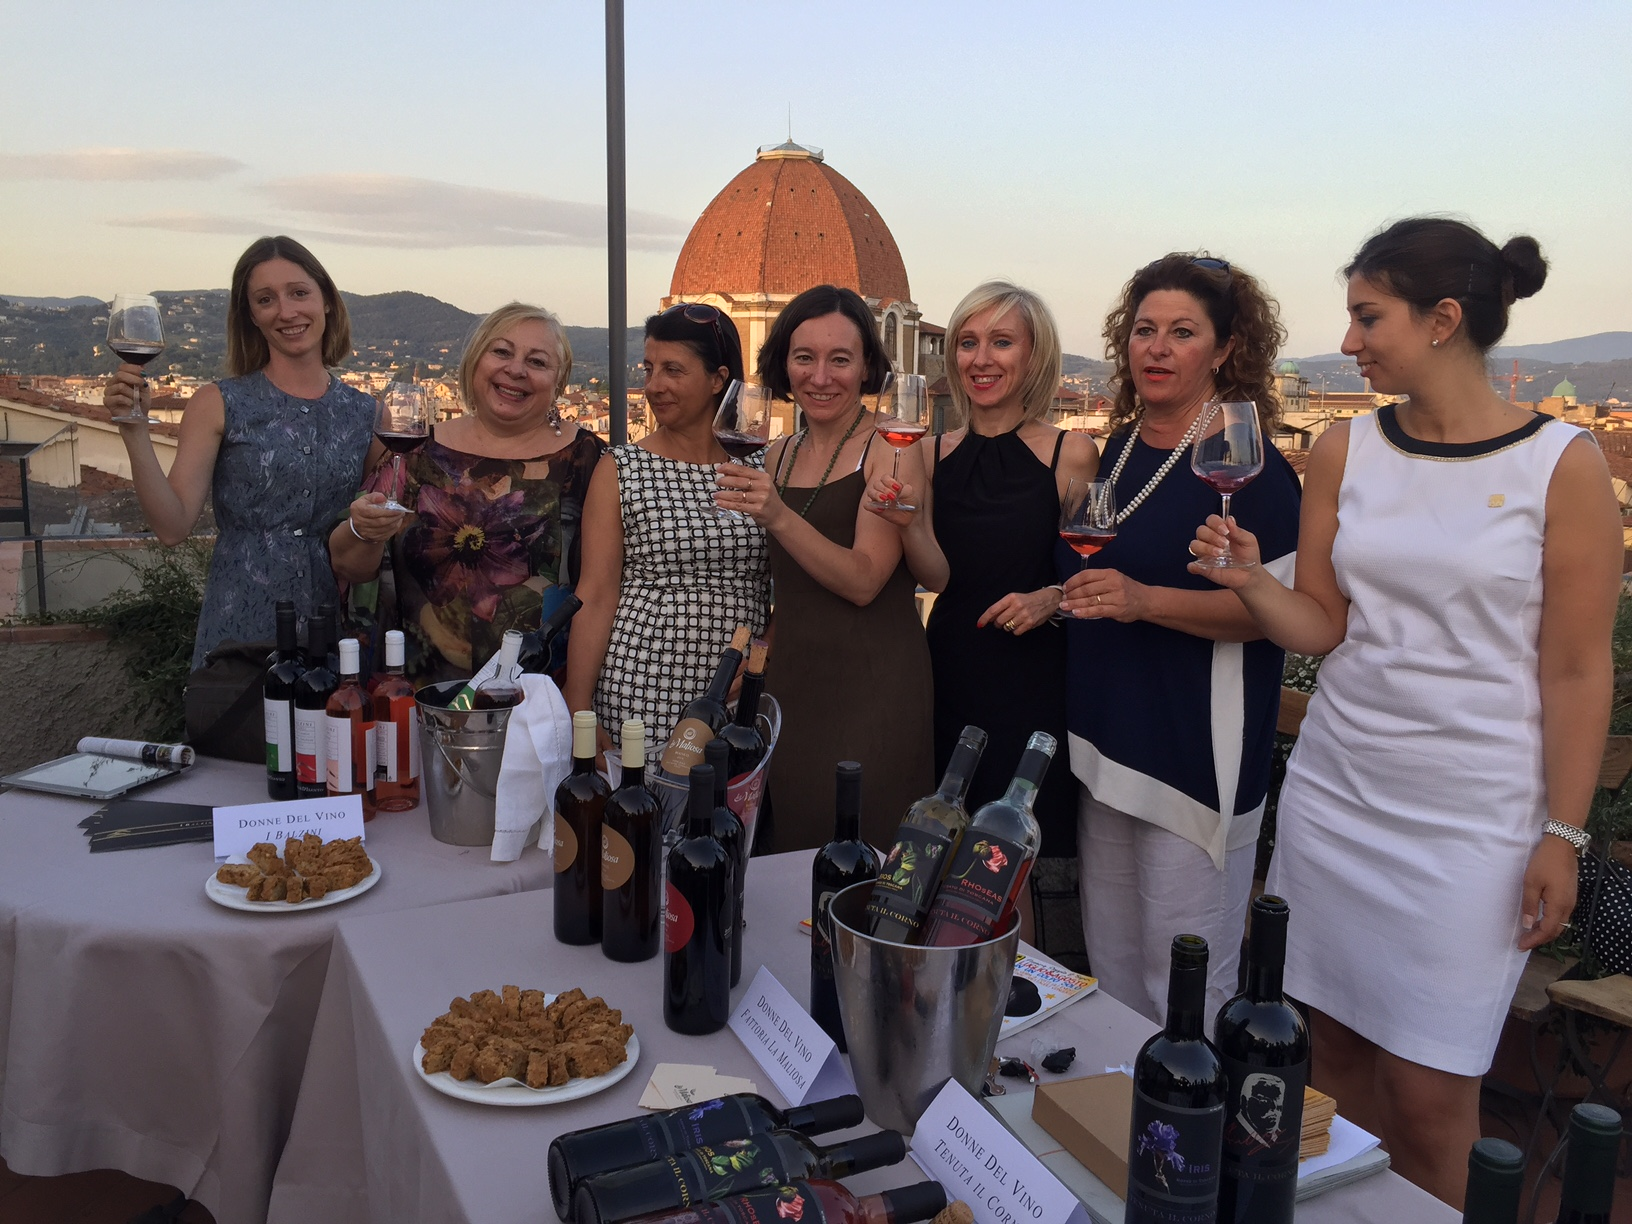 God save the wine: storie di donne del vino